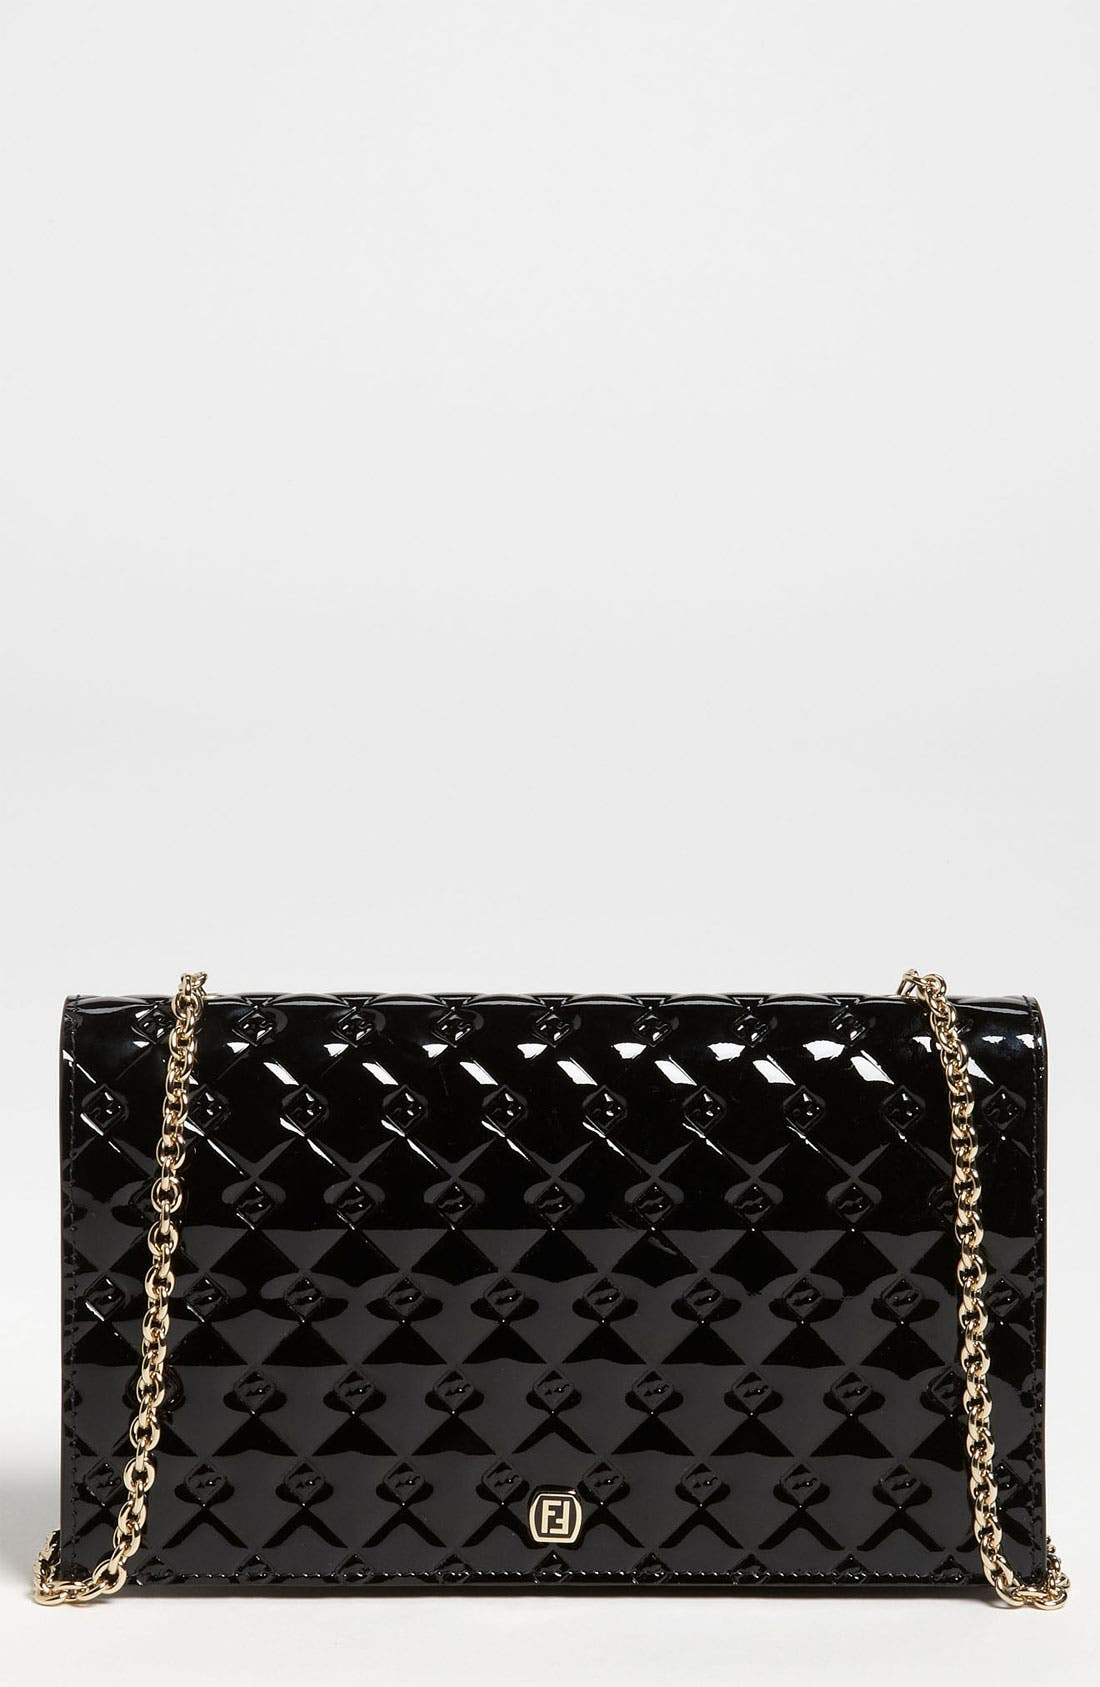 Main Image - Fendi 'Fendilicious' Patent Wallet on a Chain